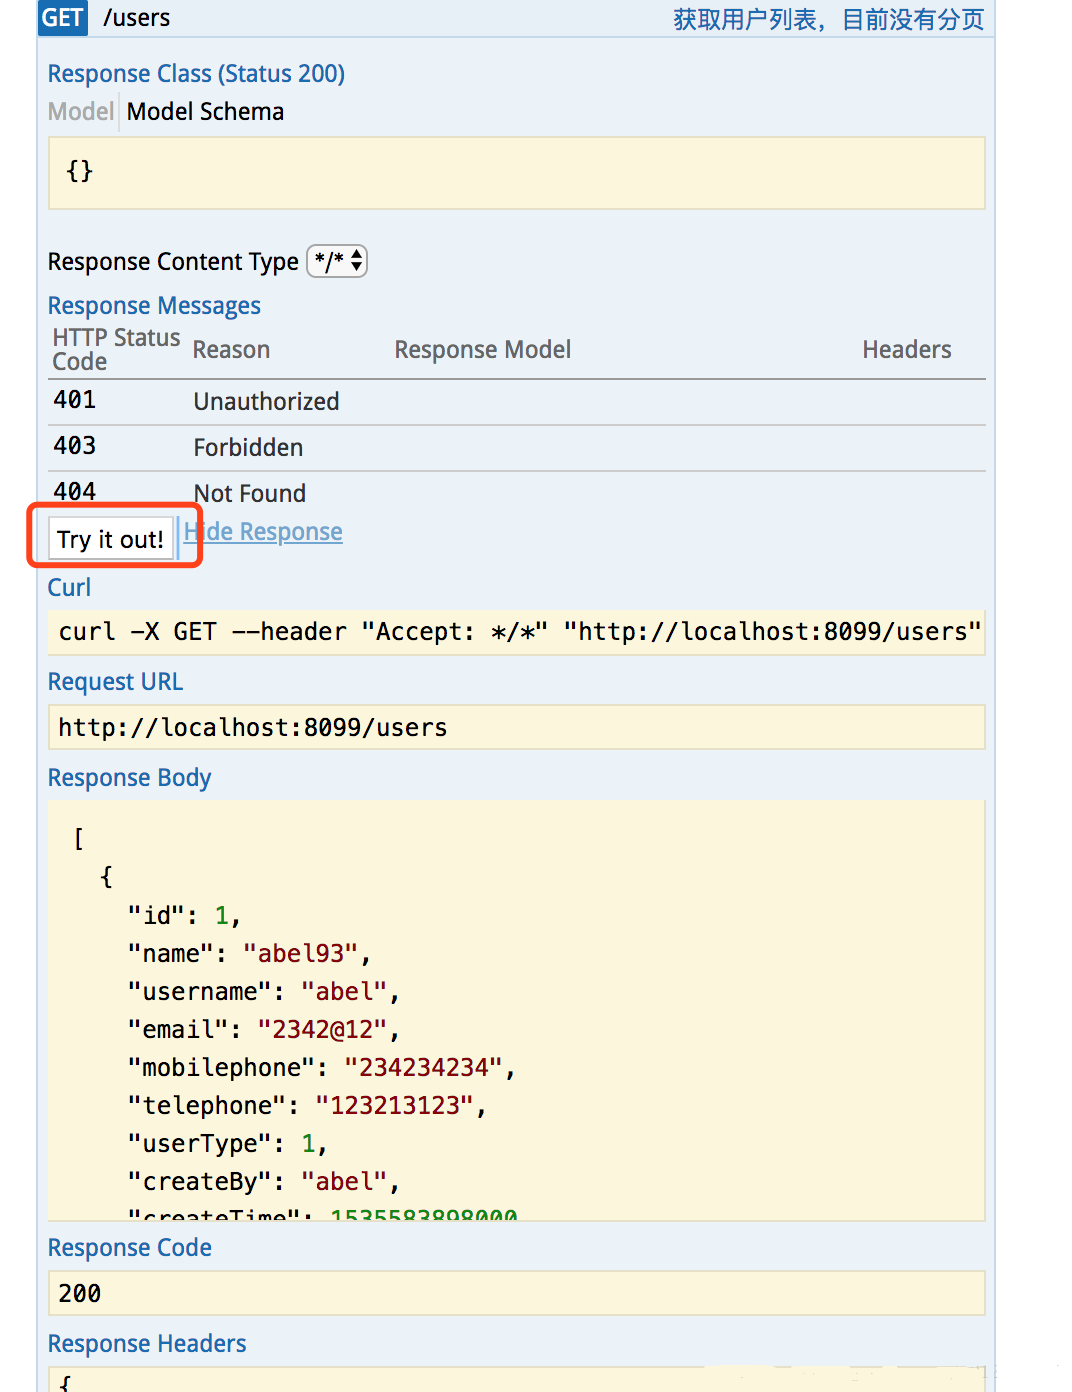 SpringBoot+Swagger-ui Automatic Generation of API Documents